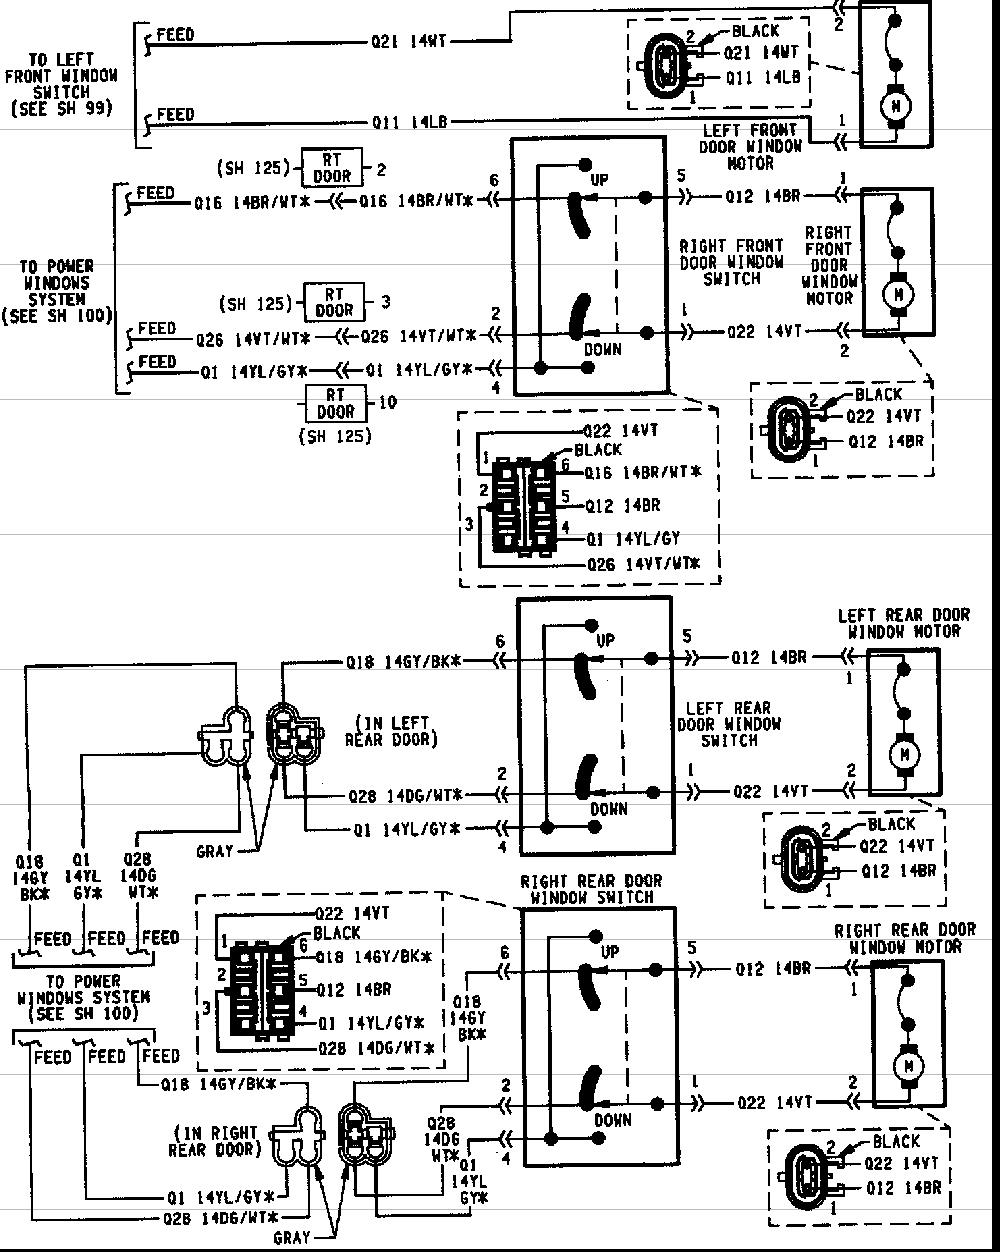 hight resolution of jeep grand cherokee wiring diagram amazing 1996 jeep grand cherokee pcm wiring diagram inspiration 17p